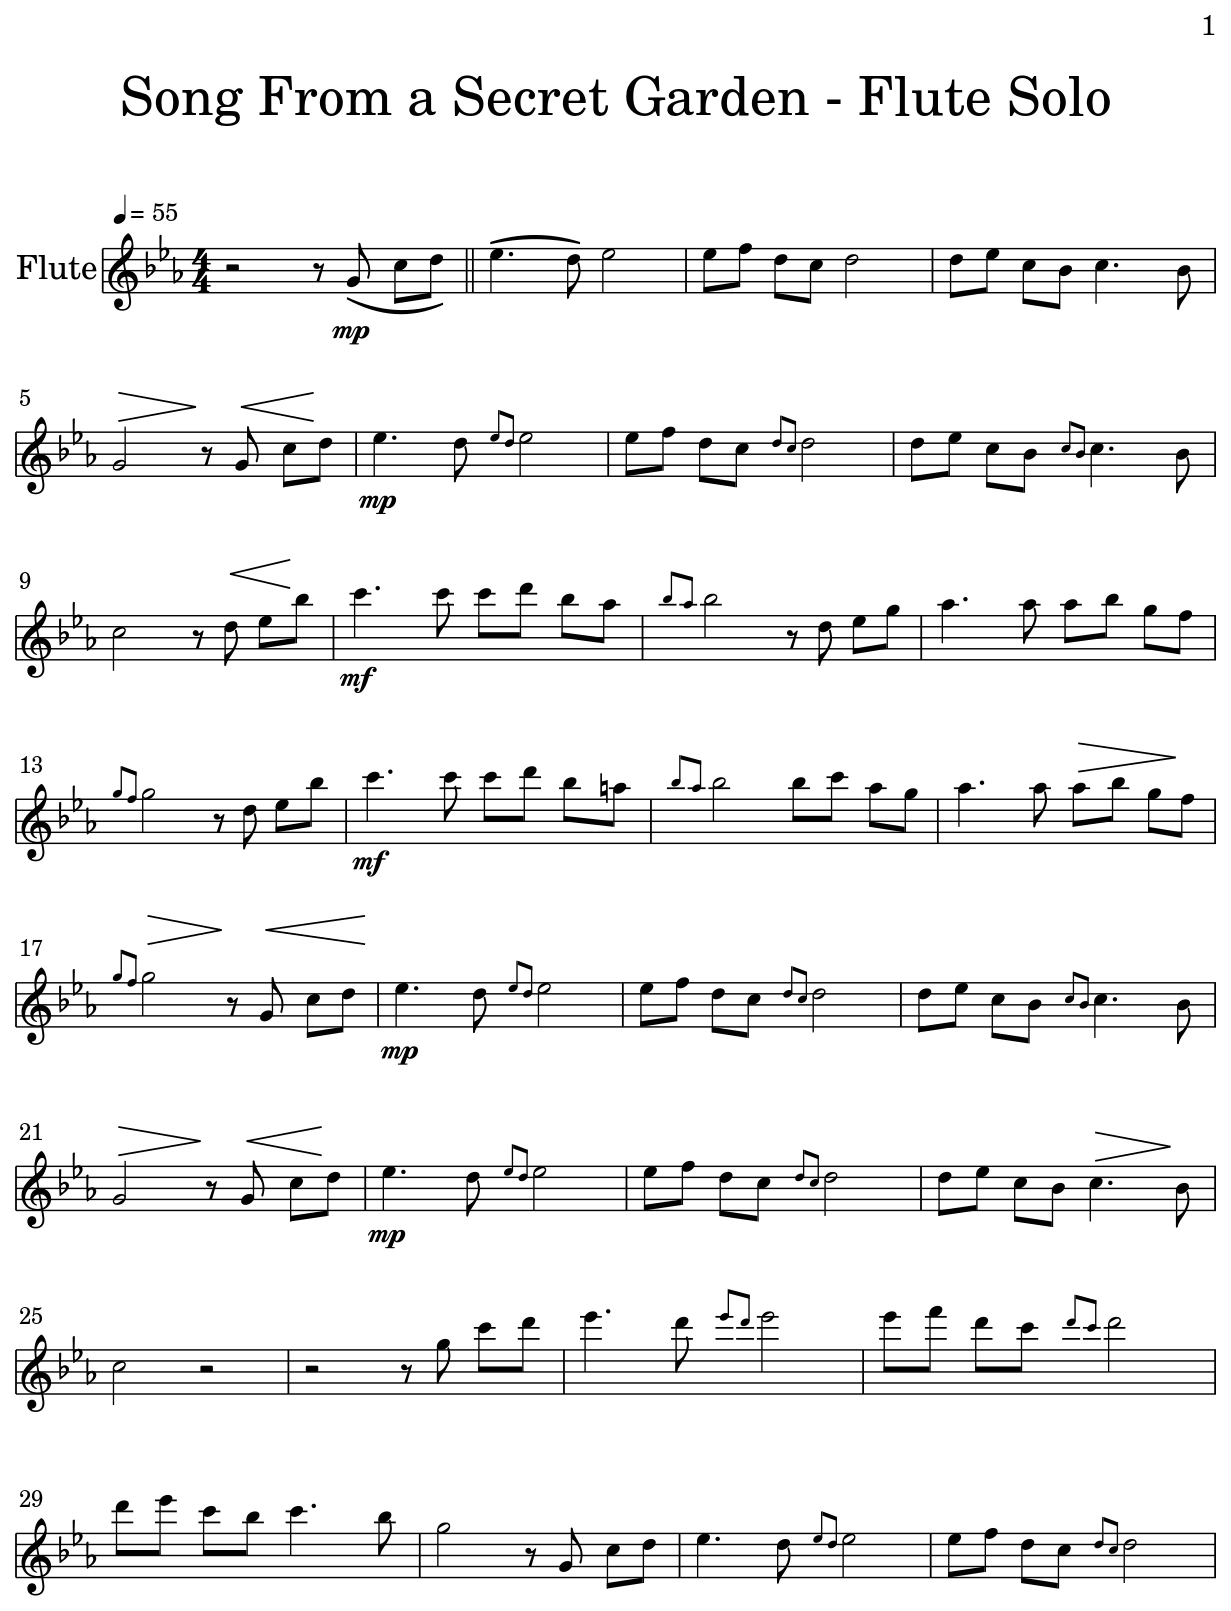 photo about Free Printable Flute Sheet Music identify Music Against a Solution Backyard garden - Flute Solo - Flat